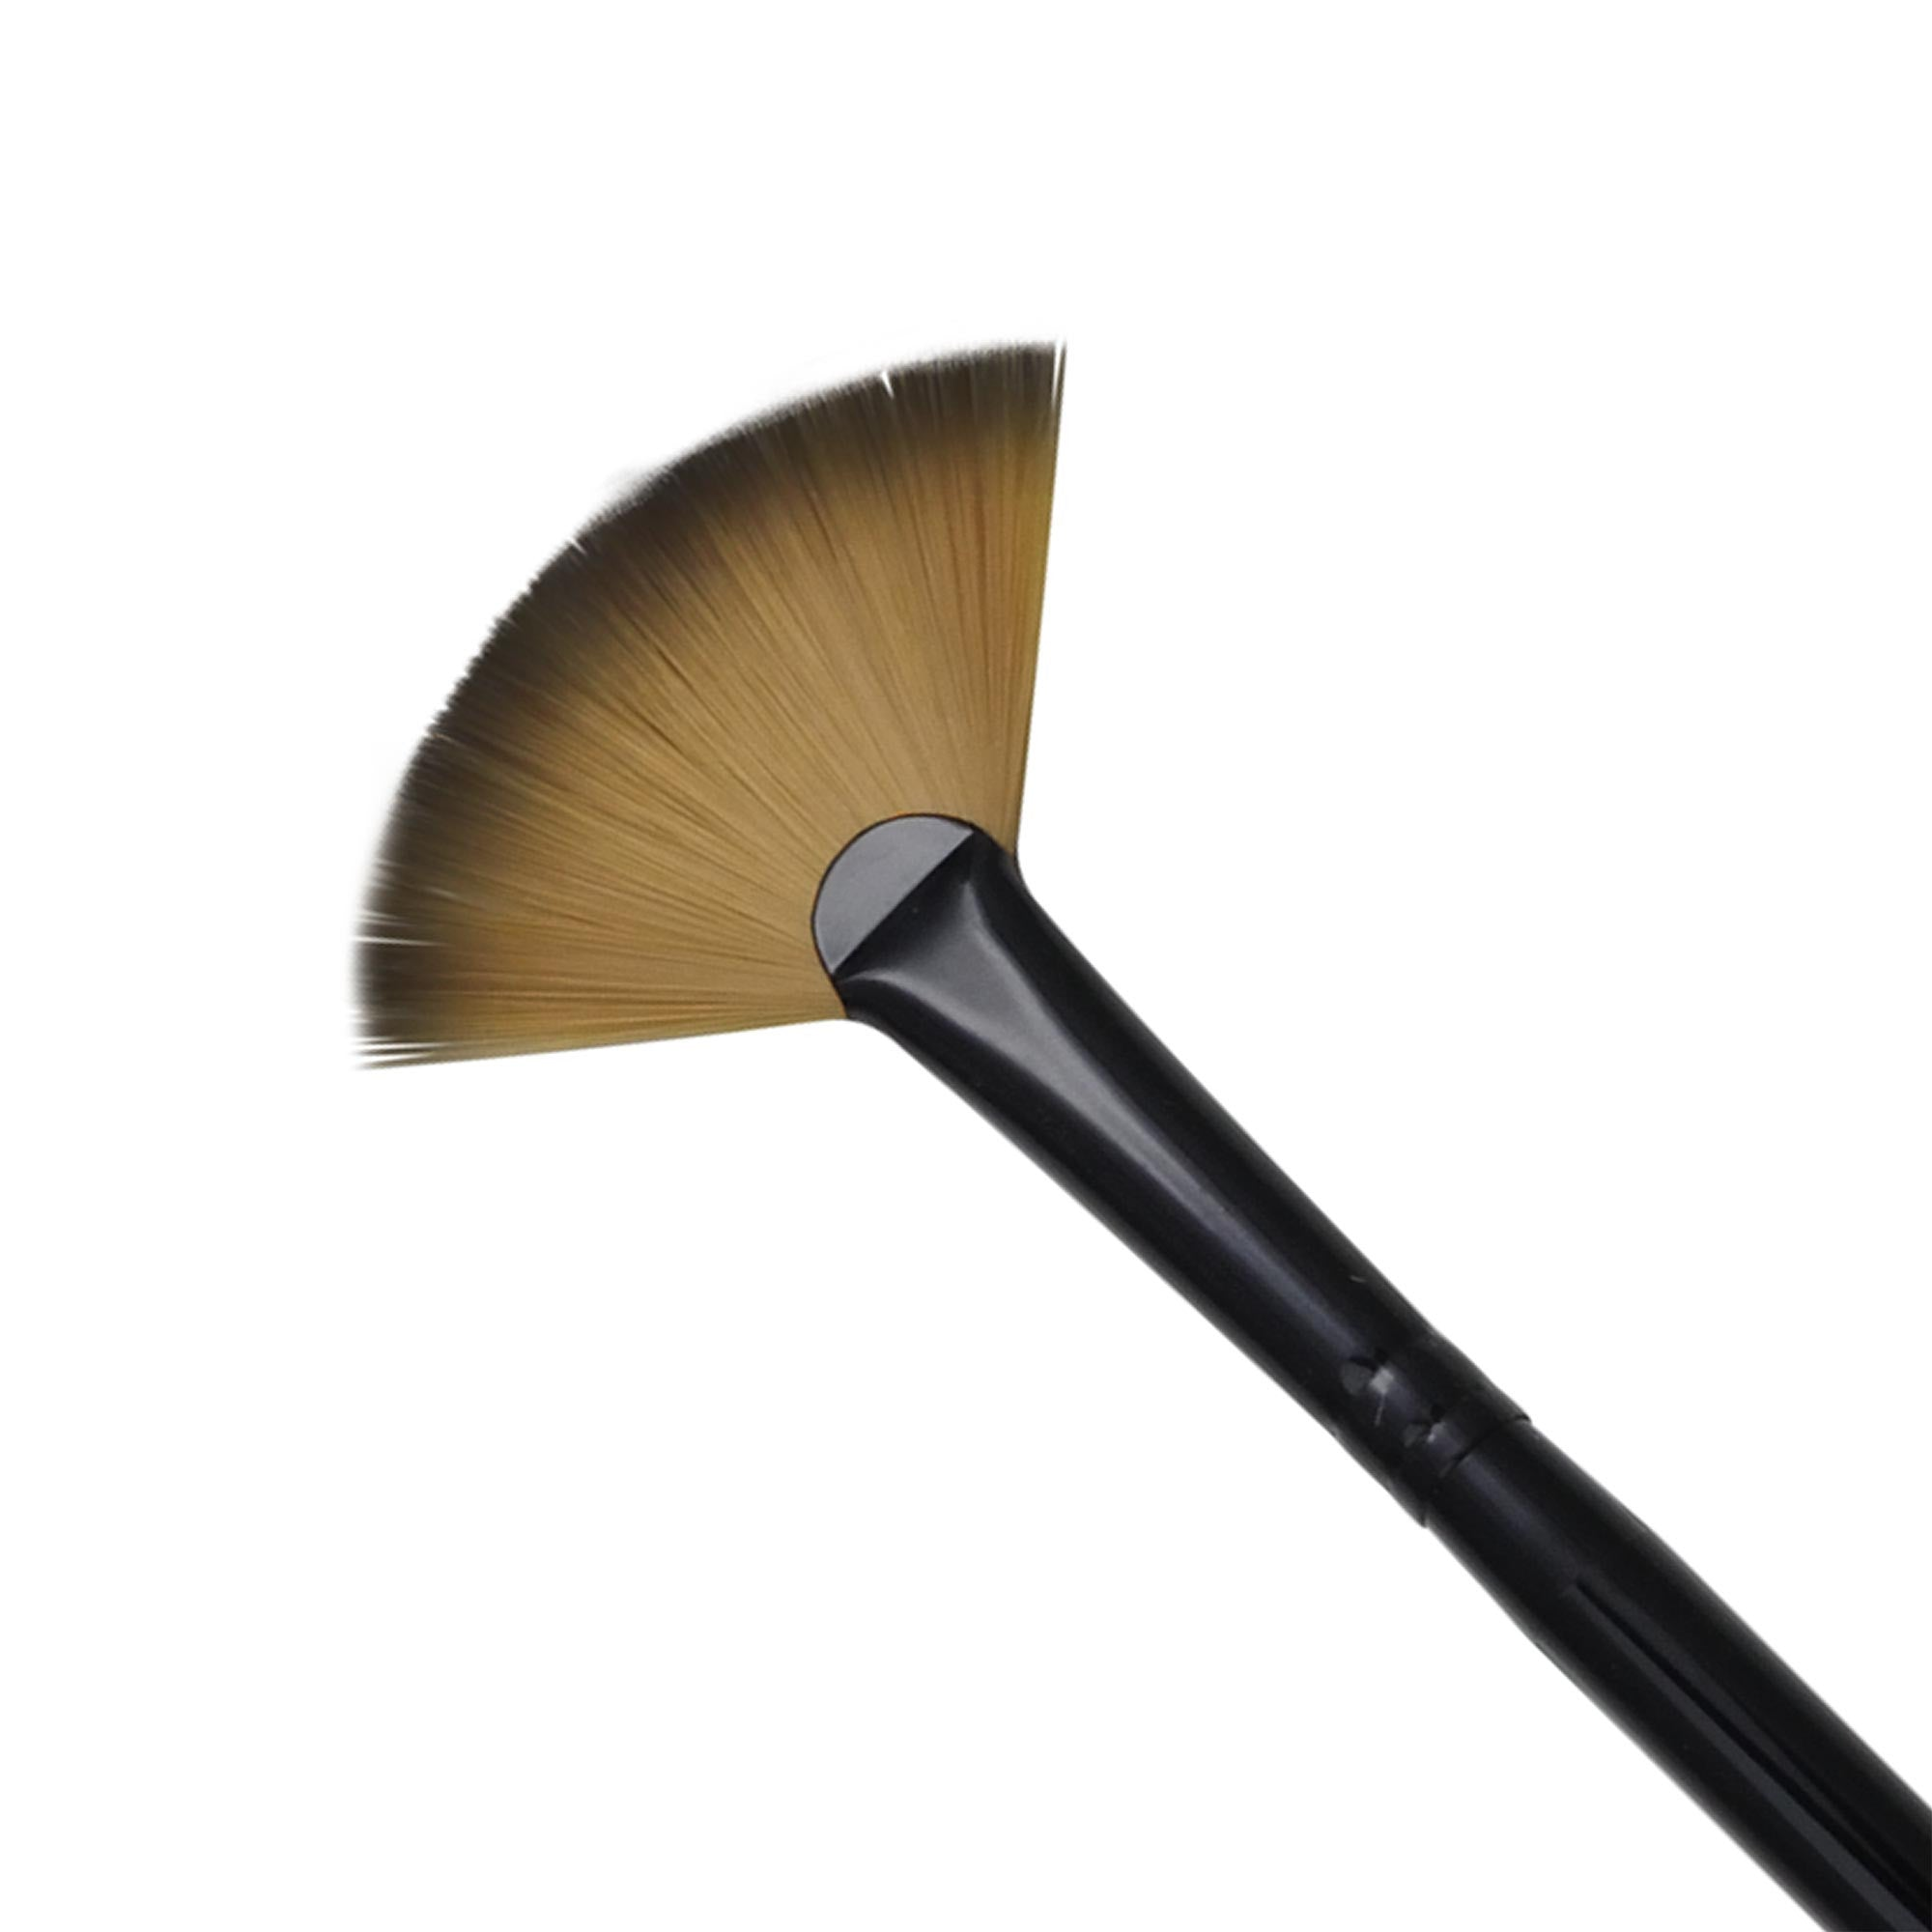 Royal & Langnickel Majestic Fan S4 Brush - Red Carpet FX - Professional Makeup